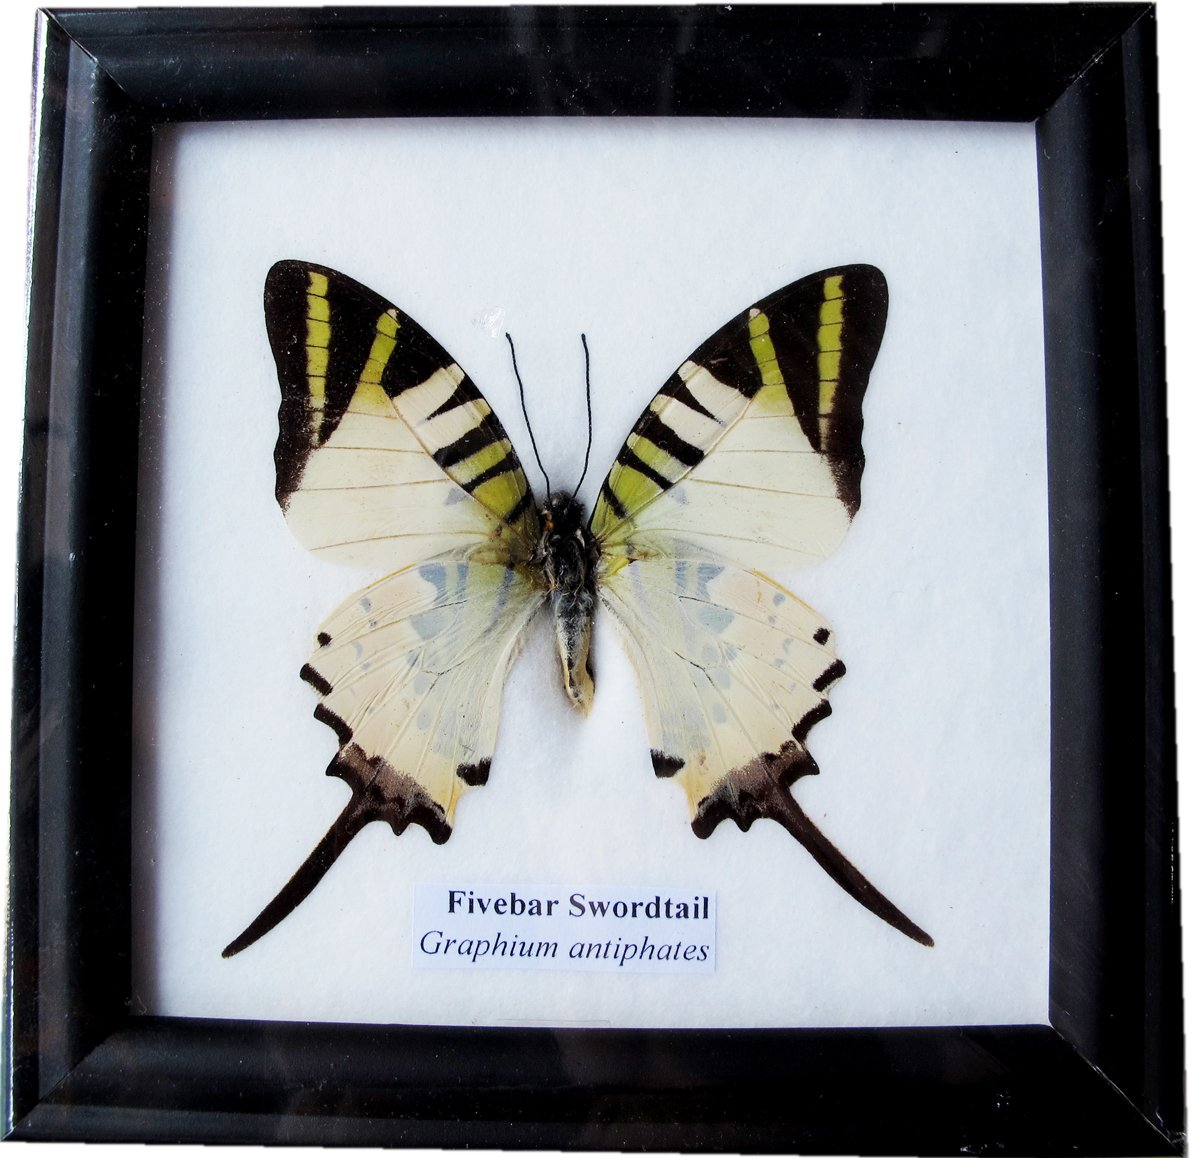 REAL BEAUTIFUL FIVEBAR SWORDTAIL BUTTERFLY DISPLAY INSECT TAXIDERMY by ThaiTaxidermy (Image #1)